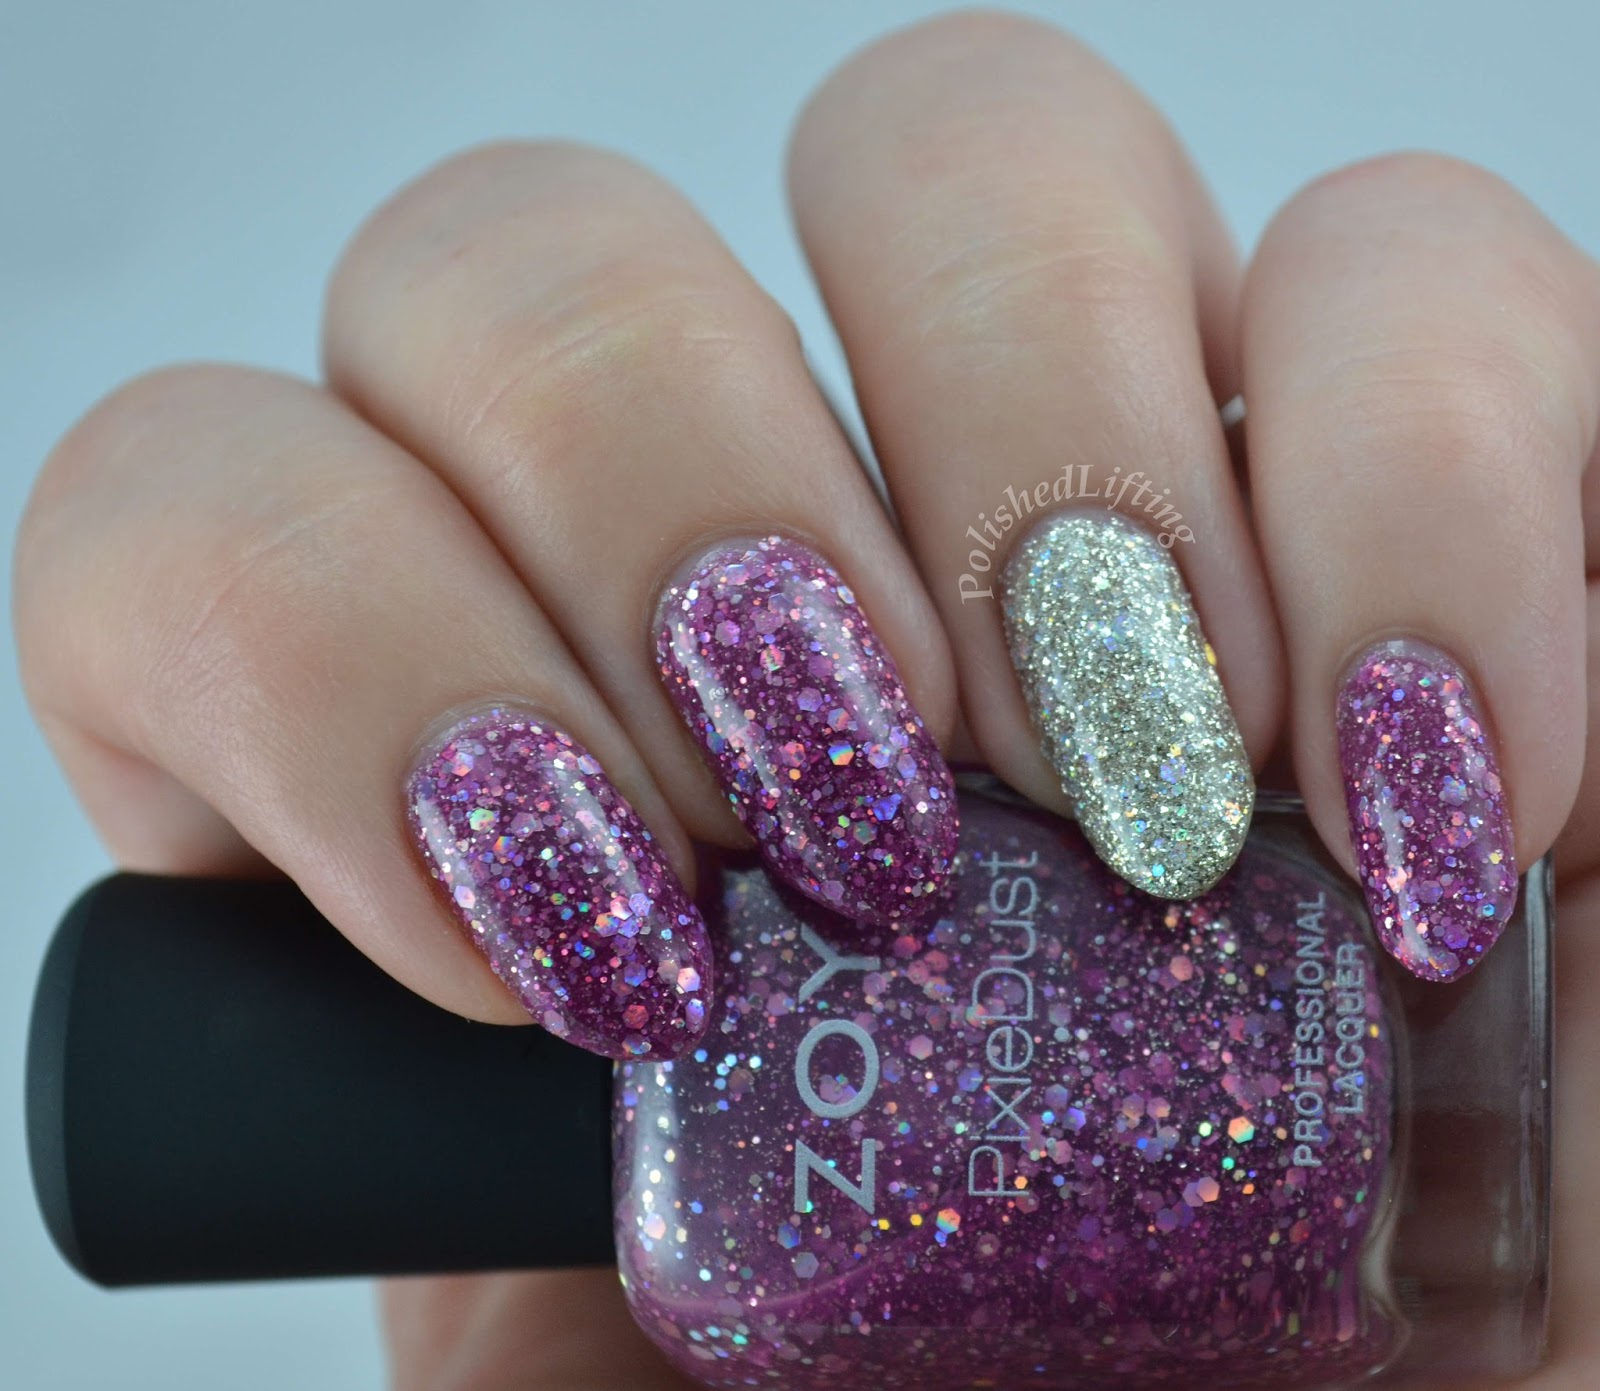 Zoya Magical Pixie Dust Arlo Cosmo